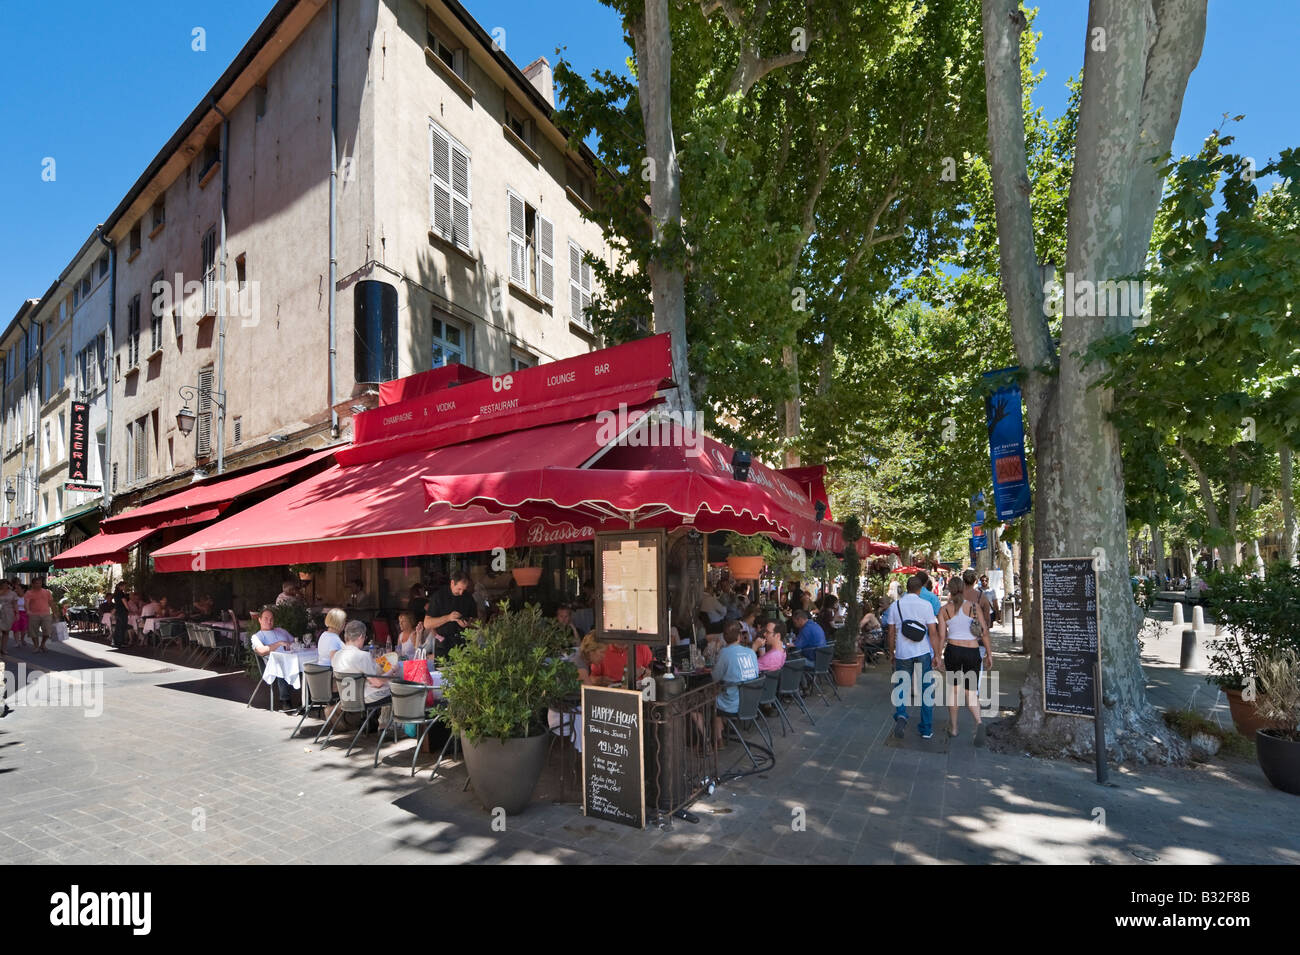 Street cafe on the Cours Mirabeau in the historic city centre Aix en Provence France - Stock Image